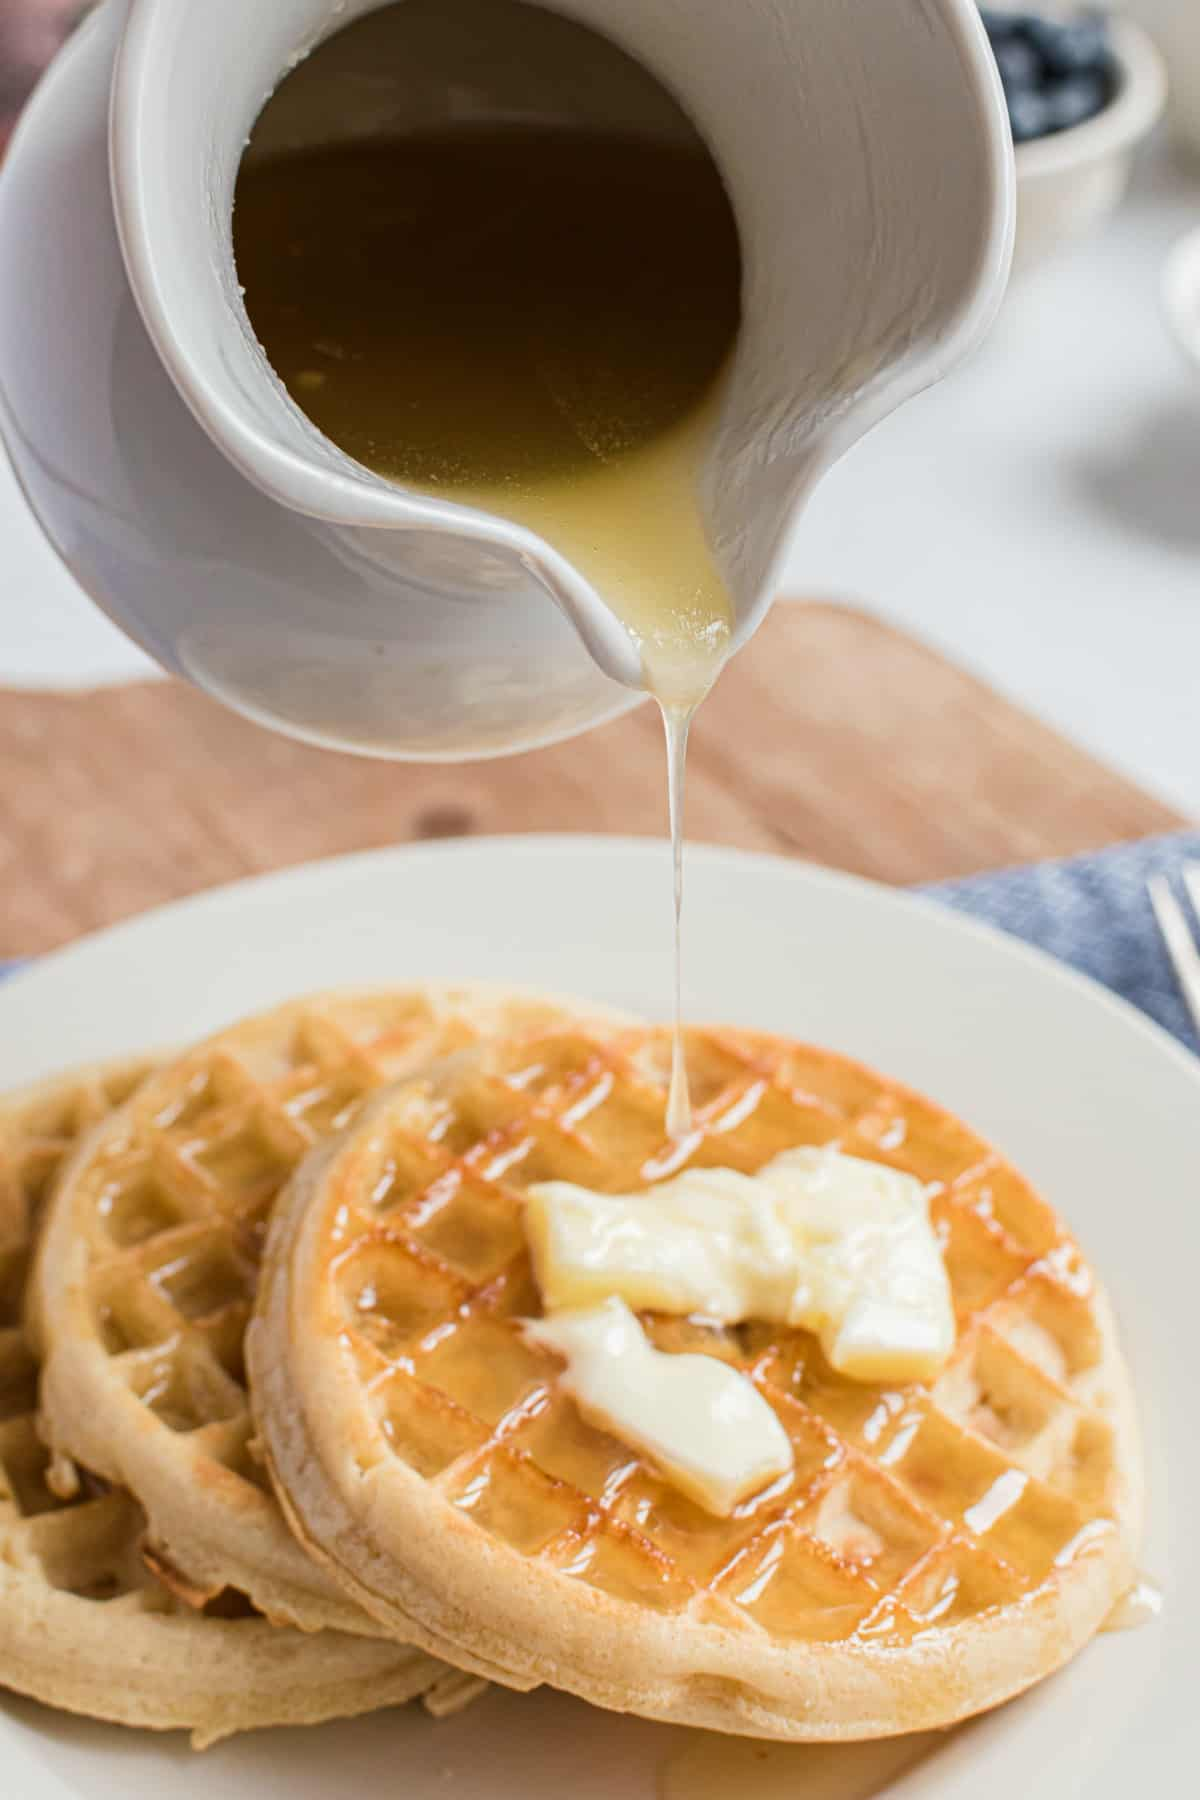 Homemade buttermilk syrup in a white pitcher being poured over a stack of homemade waffles.